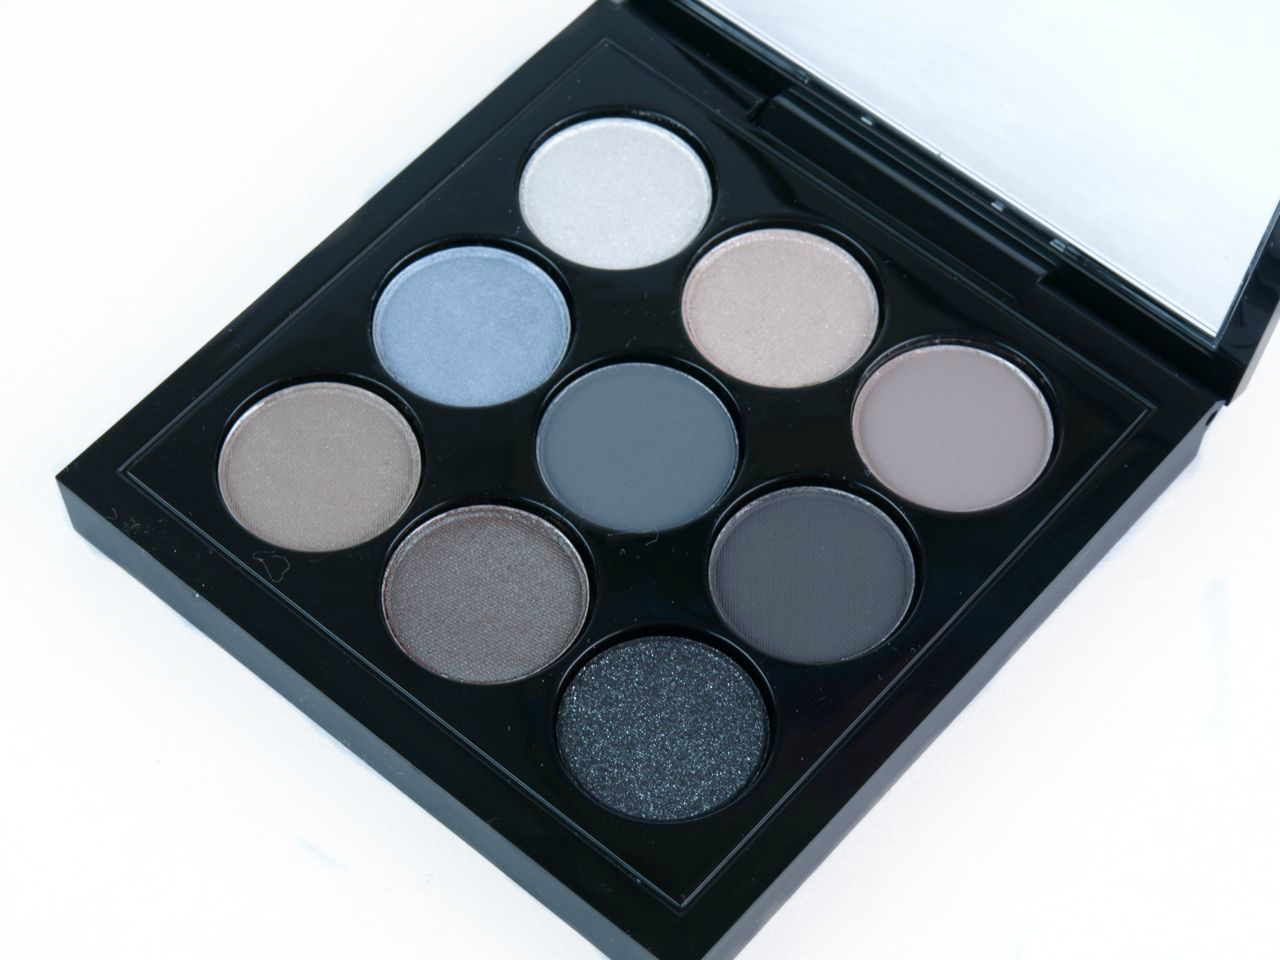 Mac eyes on mac eye shadow x9 palette in navy times nine review mac eyes on mac eye shadow x9 palette in navy times nine review altavistaventures Images